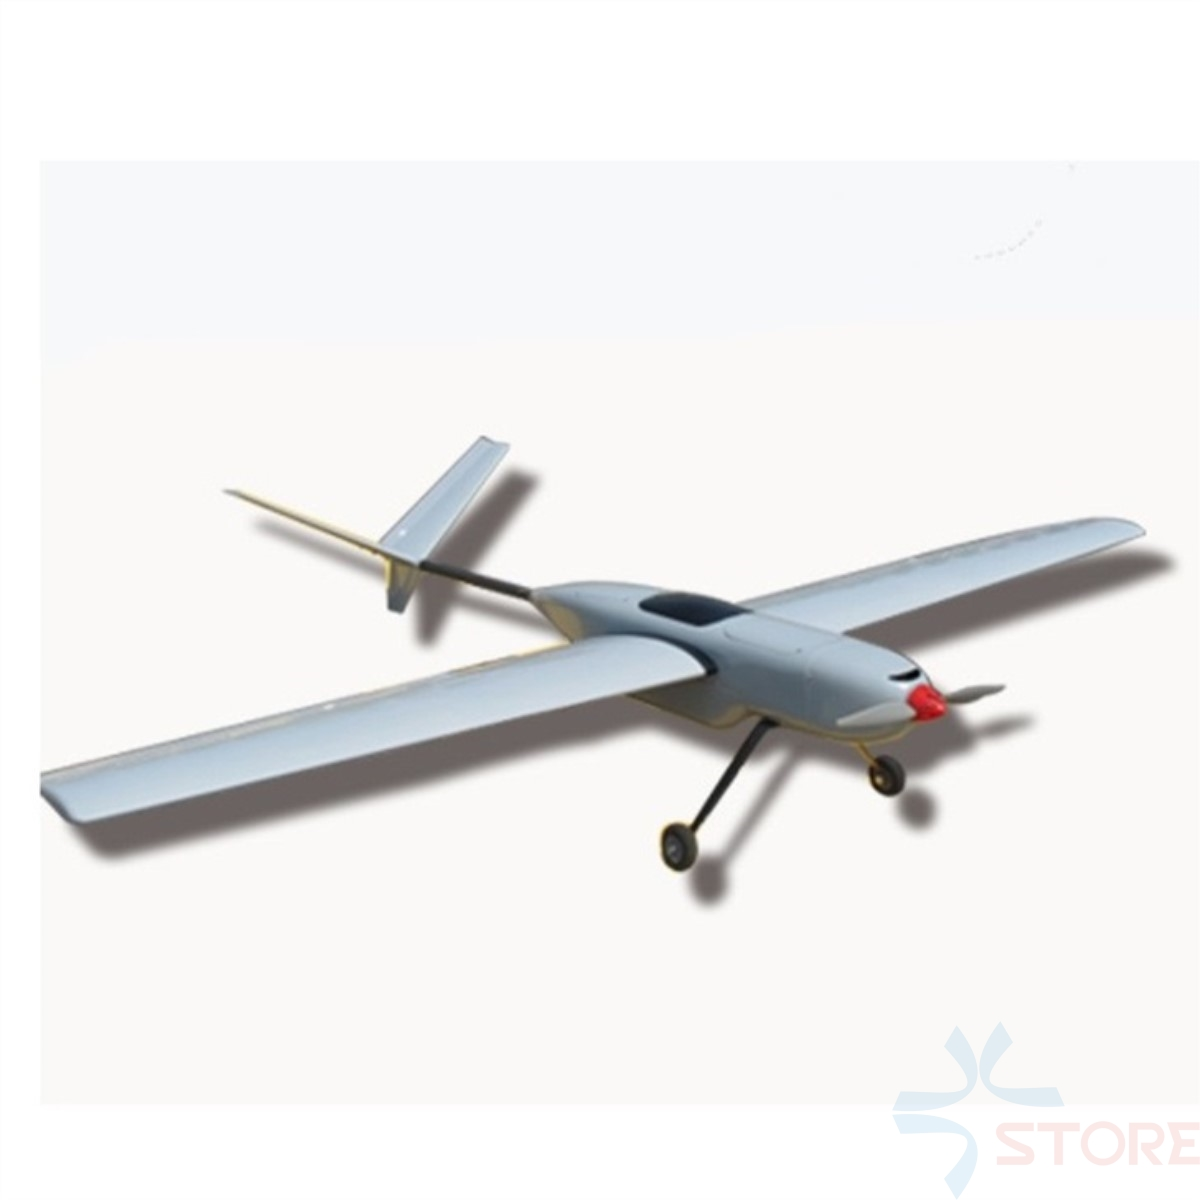 New Mugin Plus 4500mm Plane New Arrival FPV Large Flying